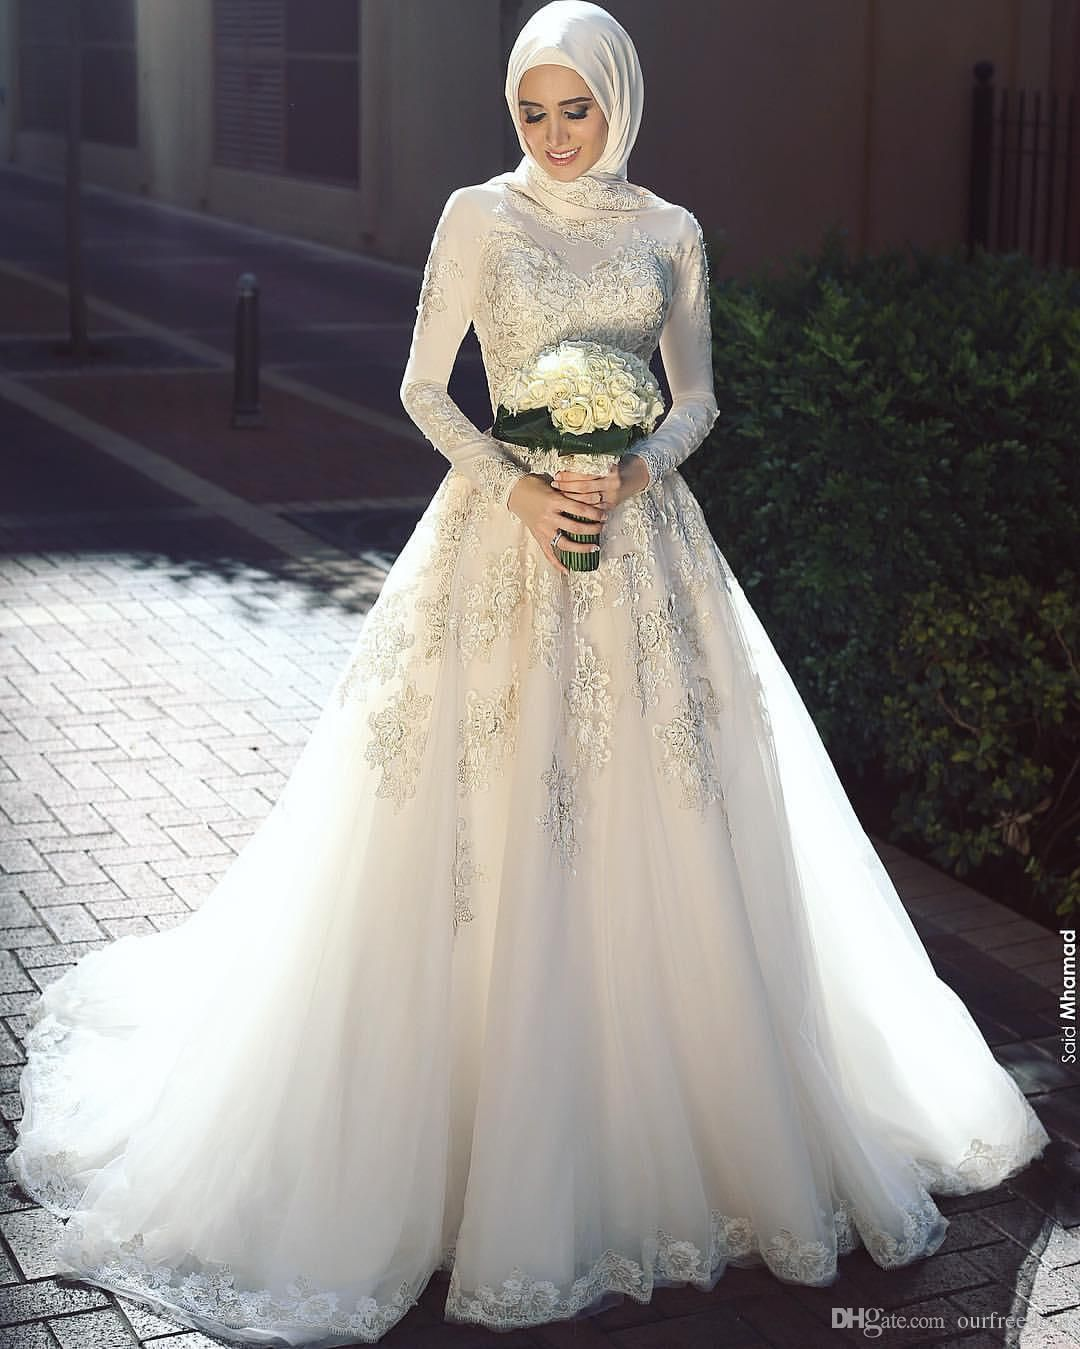 375495a8e7 Elegant 2016 High Neck Lace Muslim Wedding Dresses Long Sleeve Appliques  Country Style Bridal Gown Sweep